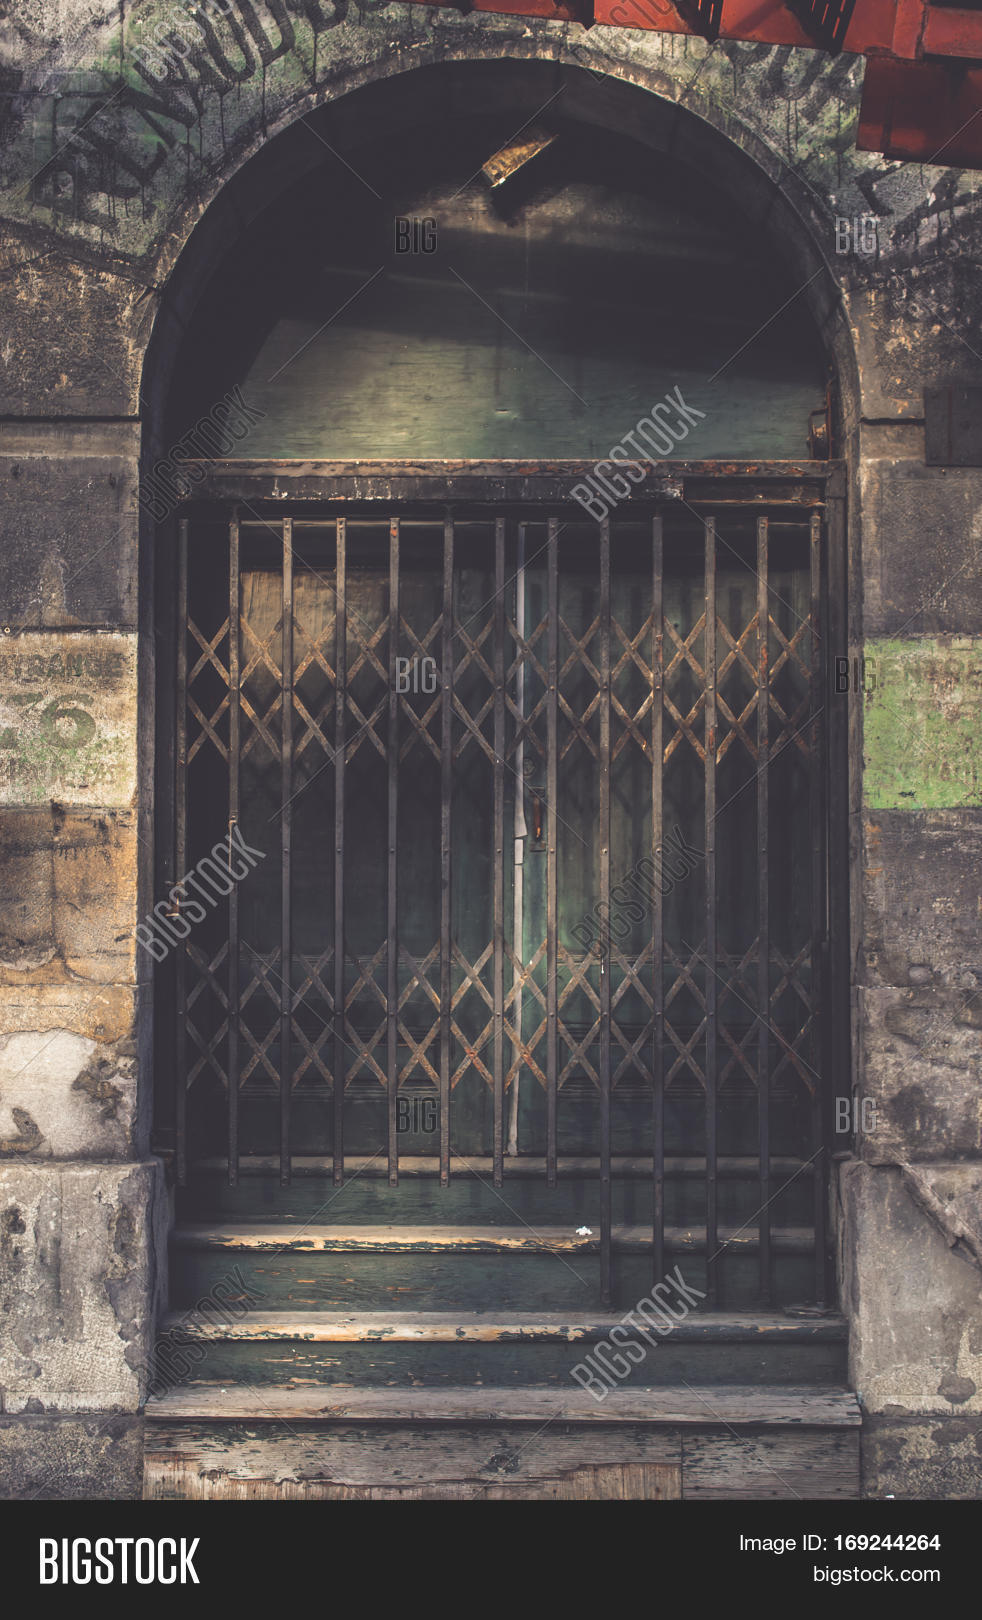 vintage sliding barred door in the dark tone for interior or exterior brick wall building decoration & Vintage Sliding Barred Image \u0026 Photo (Free Trial) | Bigstock